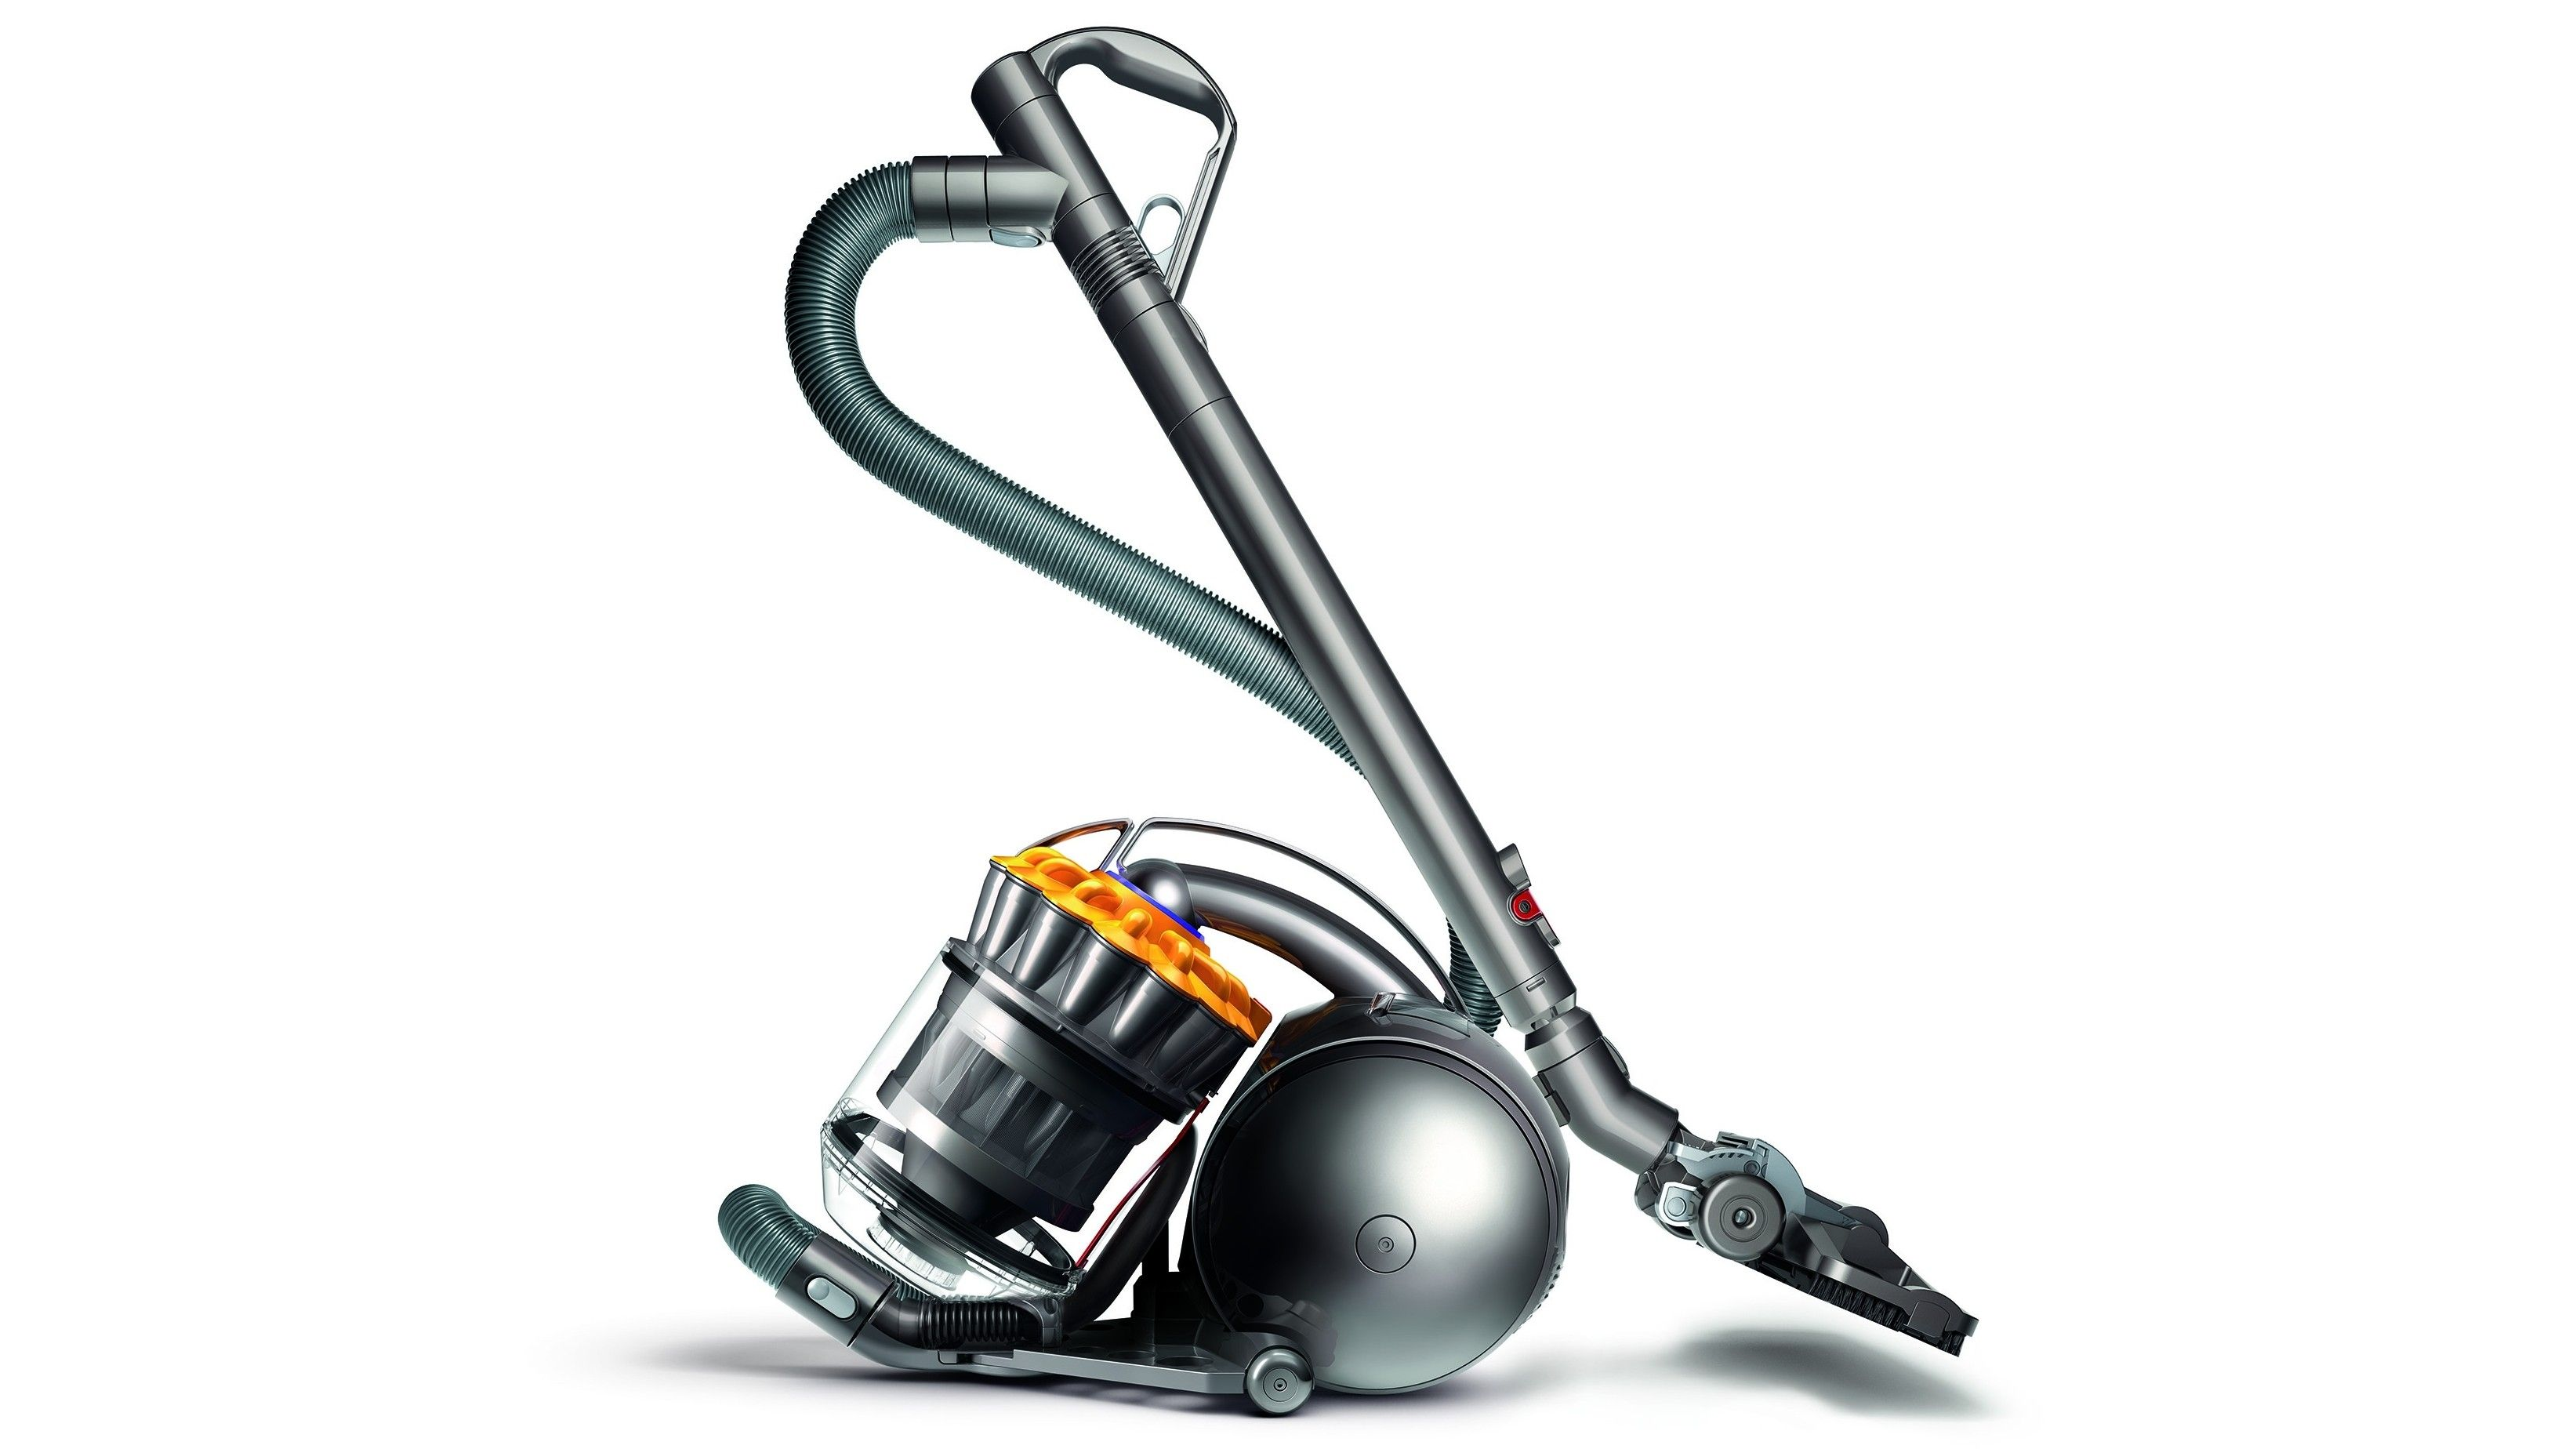 Dyson Dc37 Origin Bagless Vacuum Cleaner Moving Out